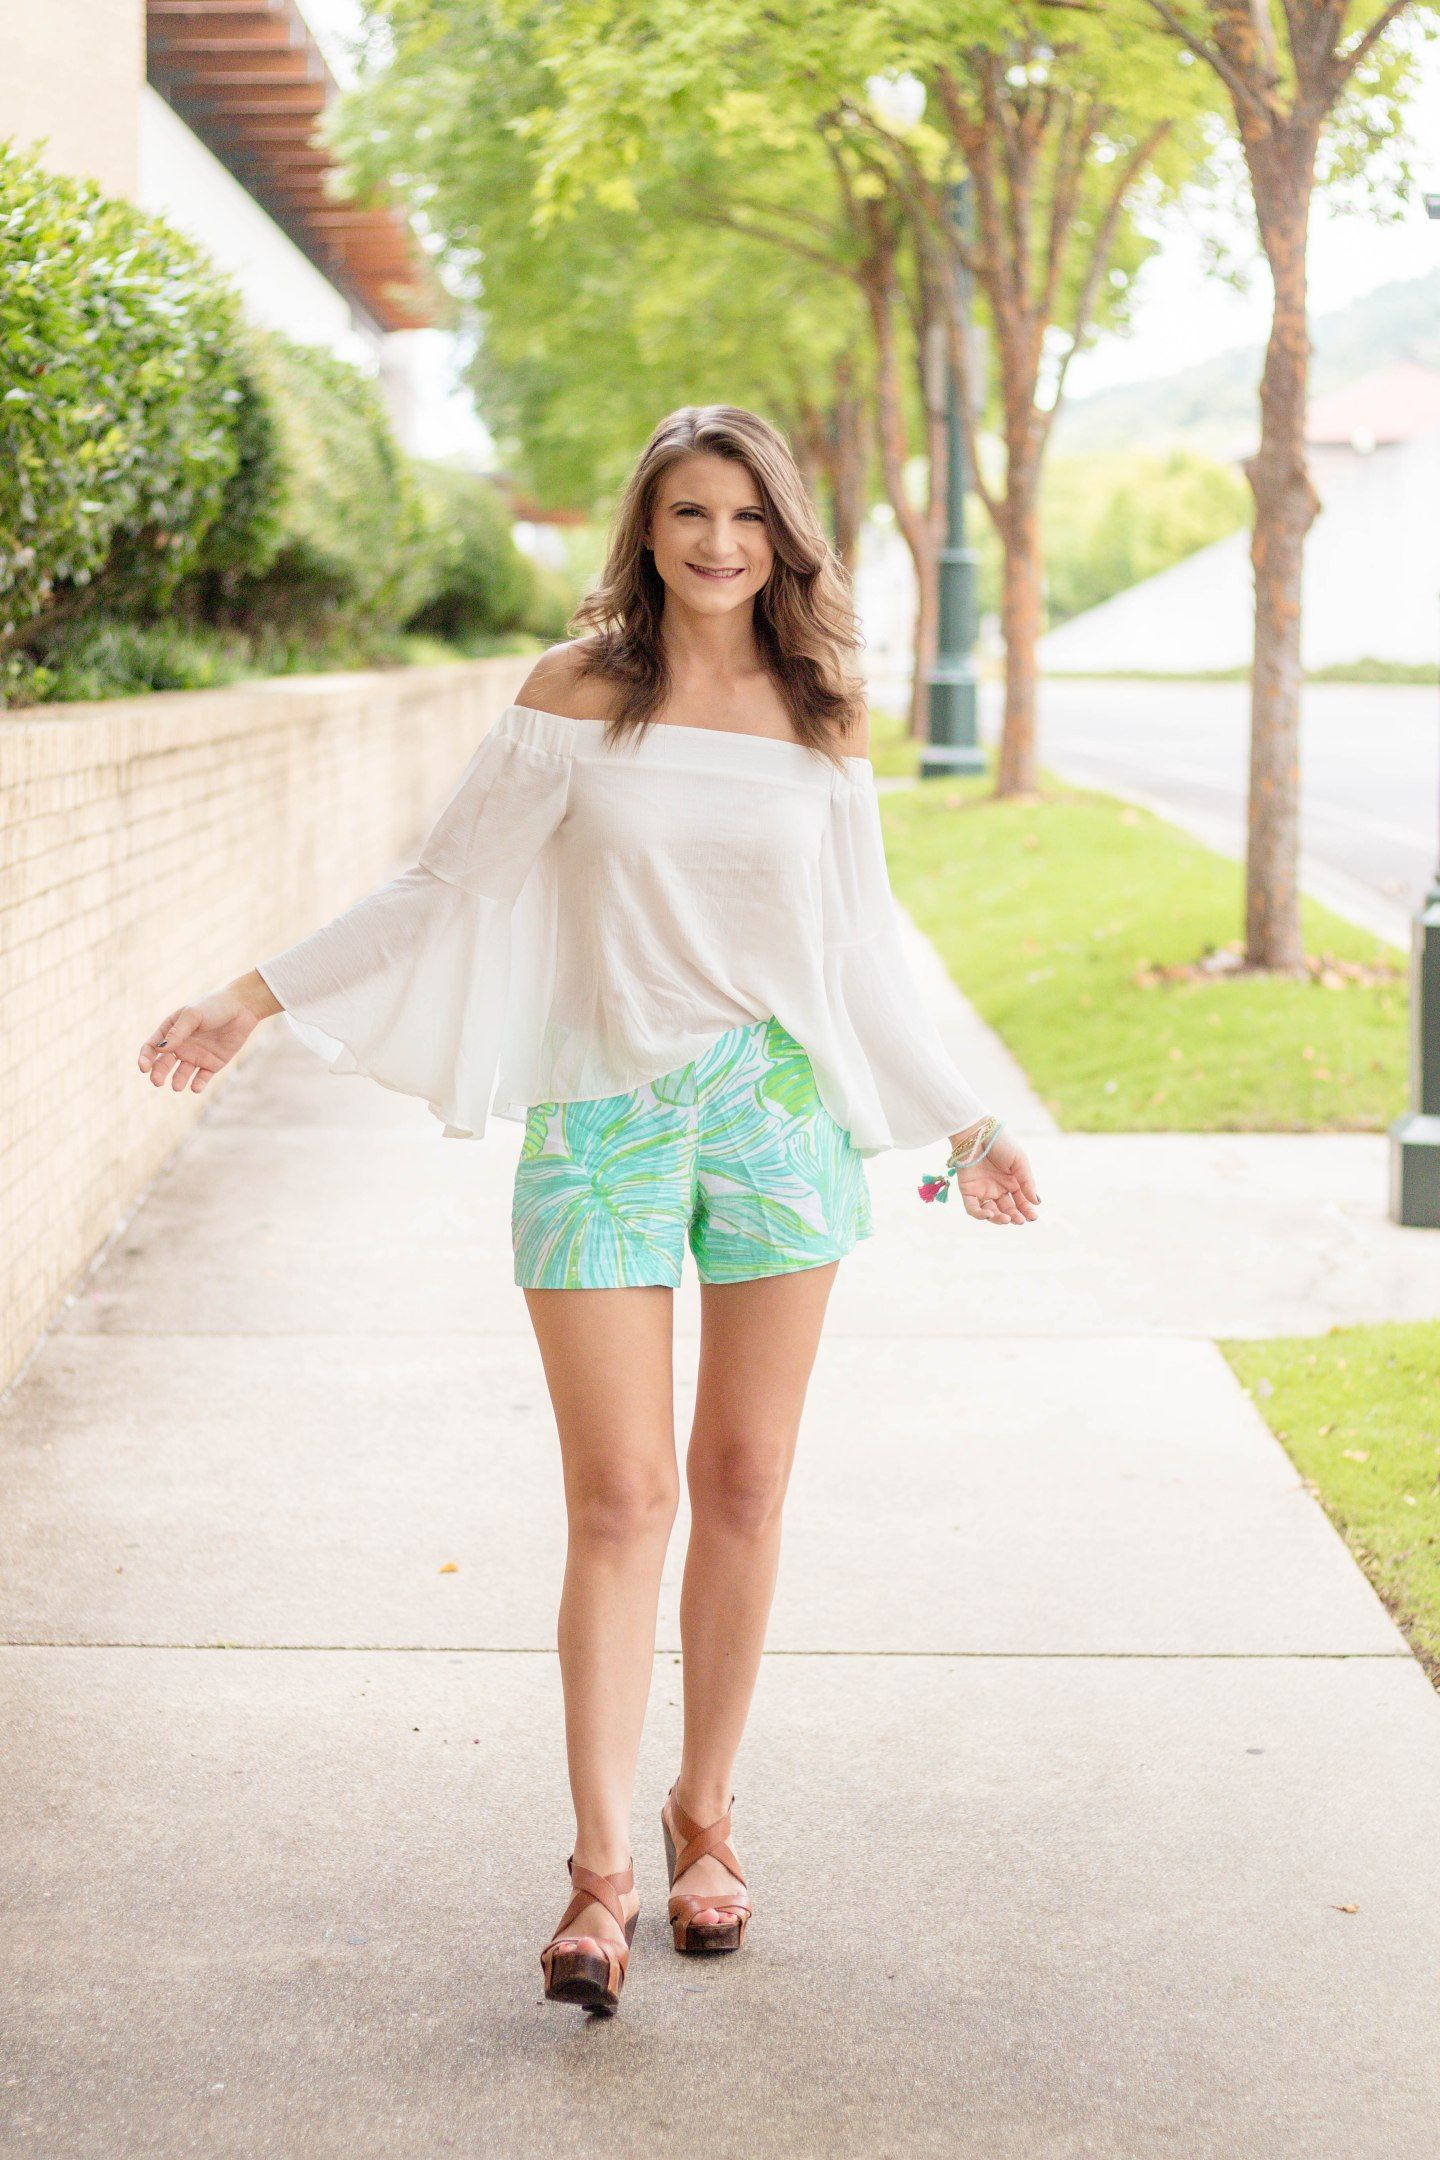 20186a9cefed08 Lilly Pulitzer Short and Off the Shoulder Top   Chic Little Honey ...